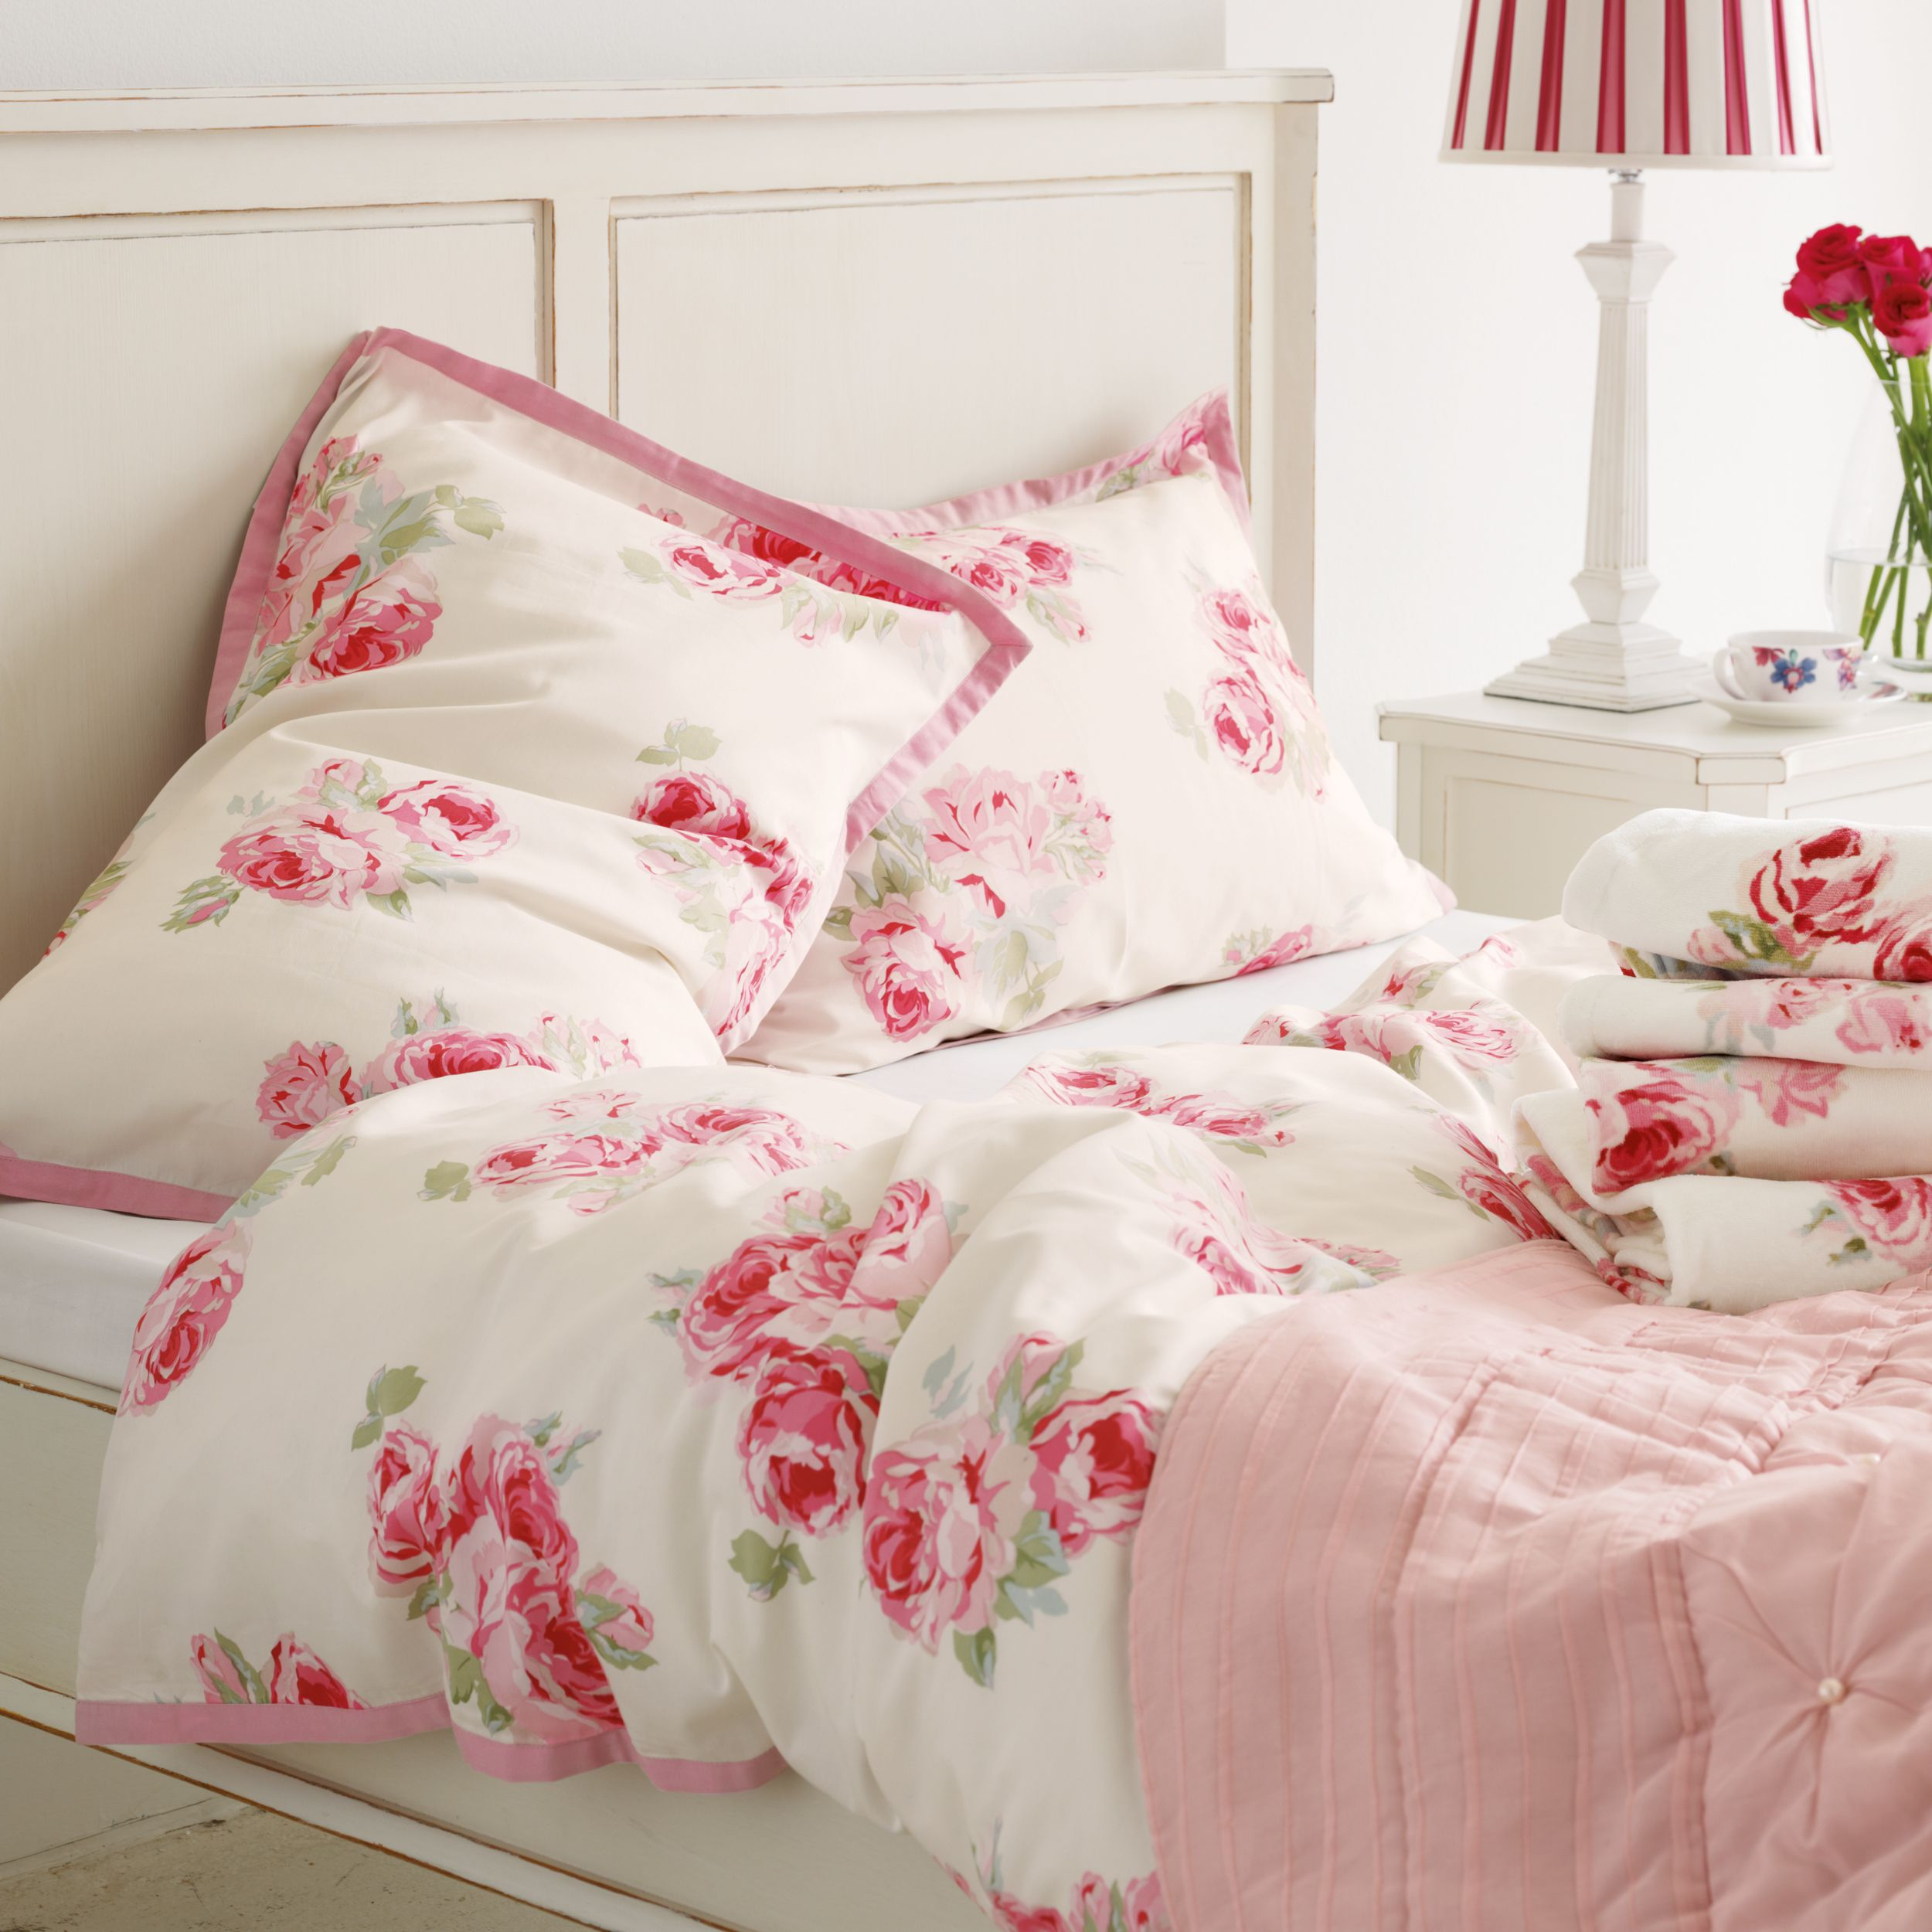 couture rose cotton duvet cover in king plus pillowcases laura ashley